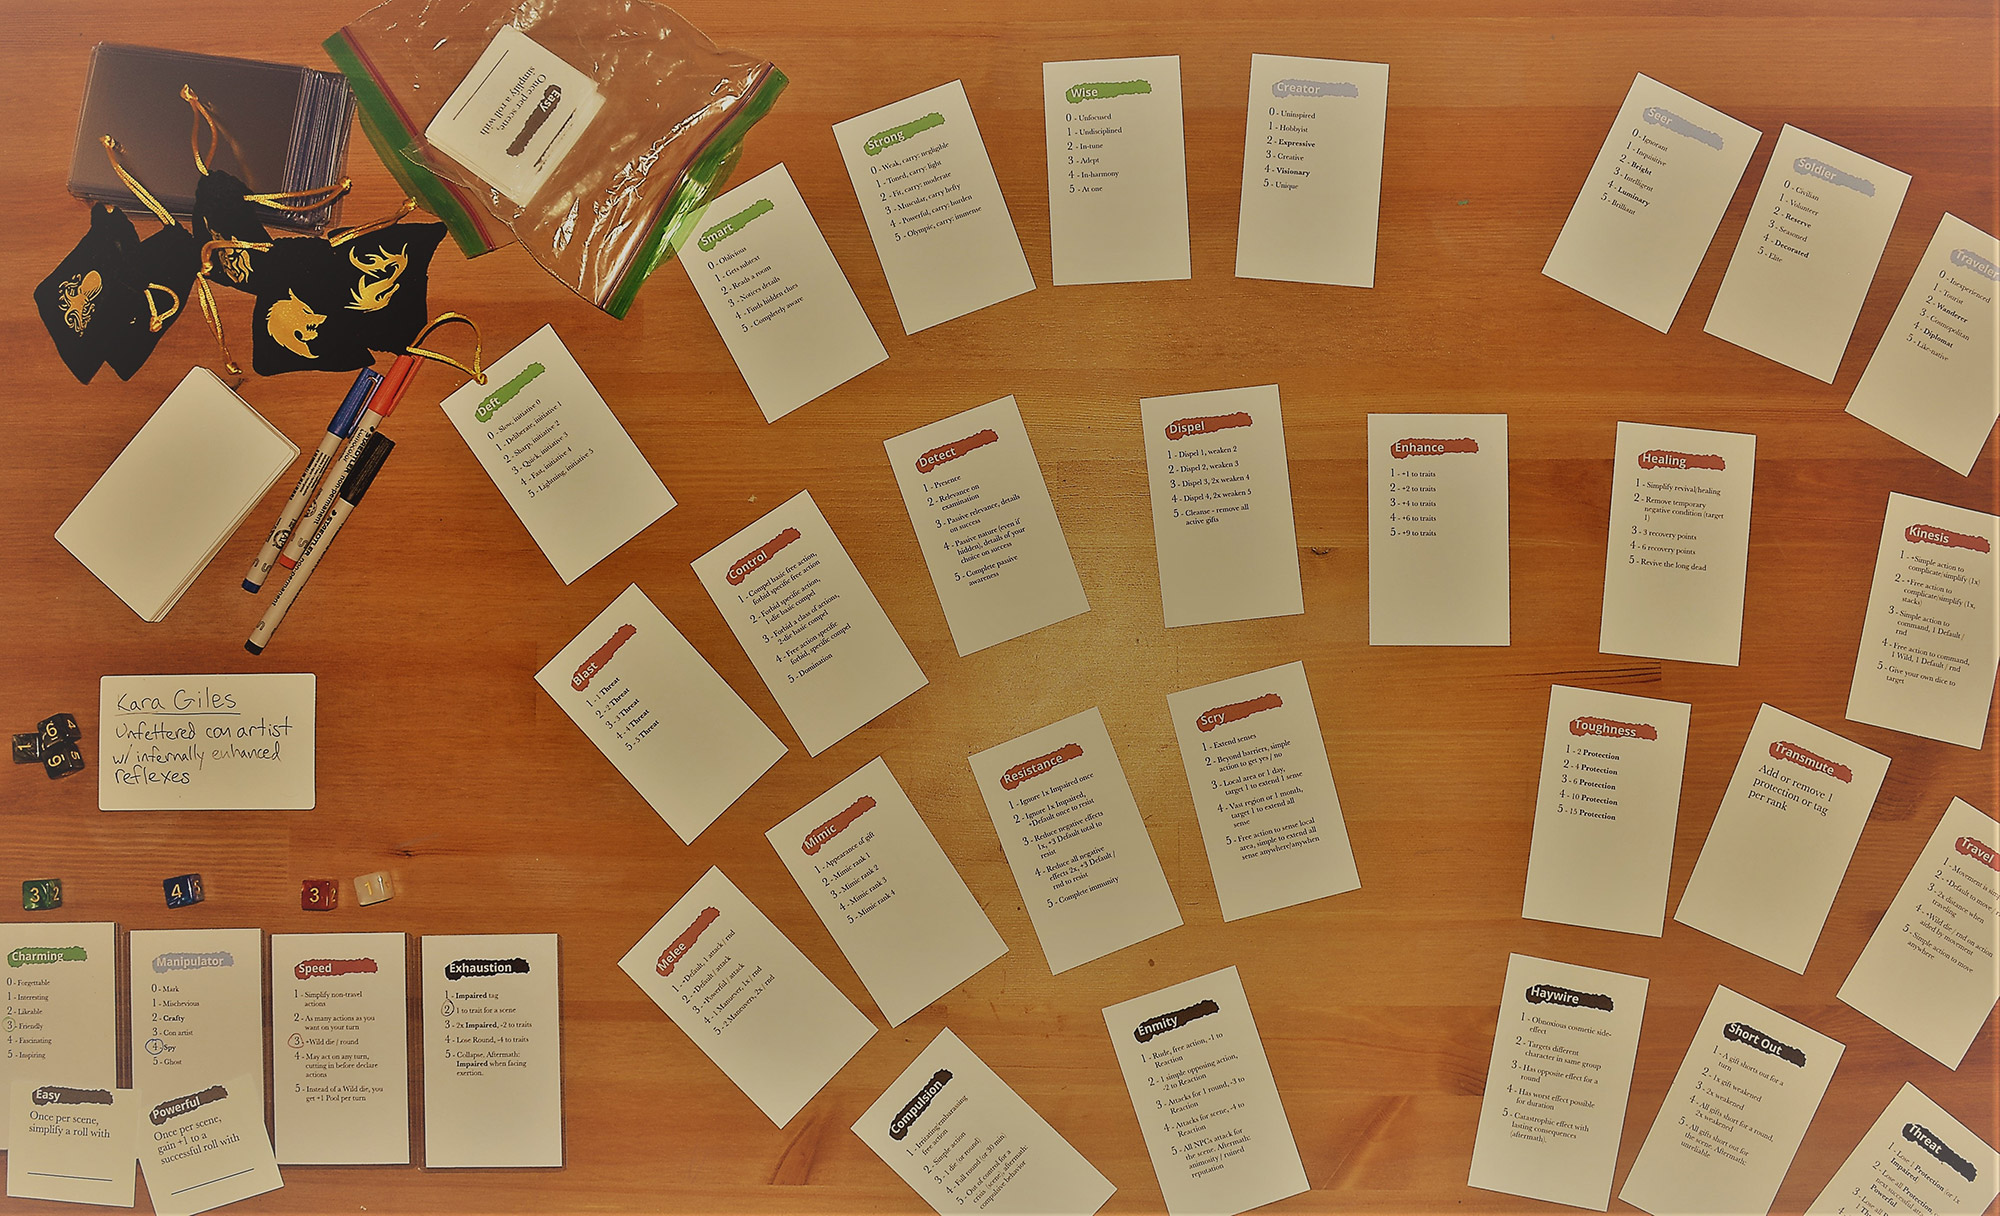 Tox Cards Laid Out on Table